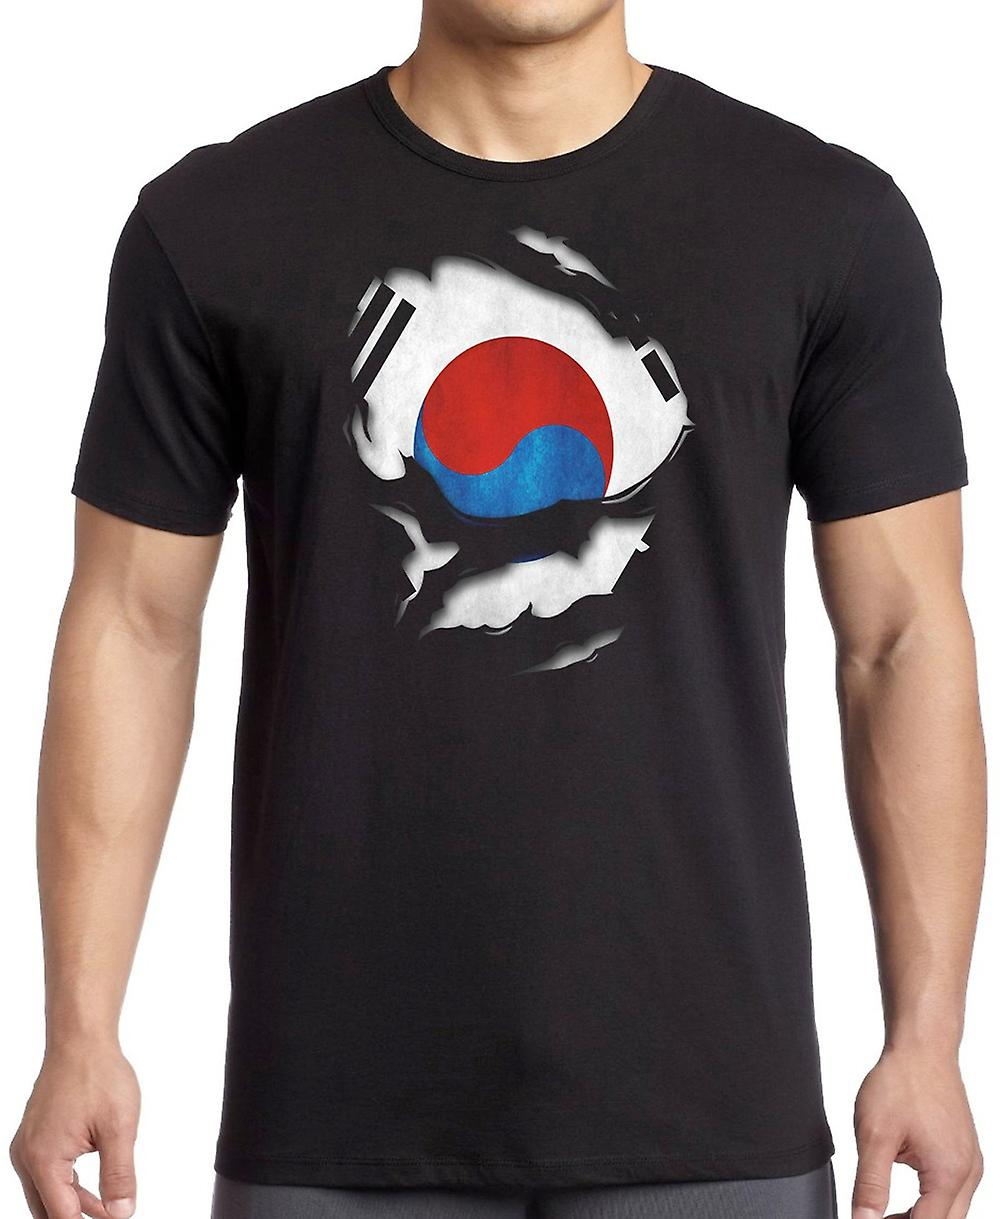 South Korea Ripped Effect Under Shirt Women T Shirt